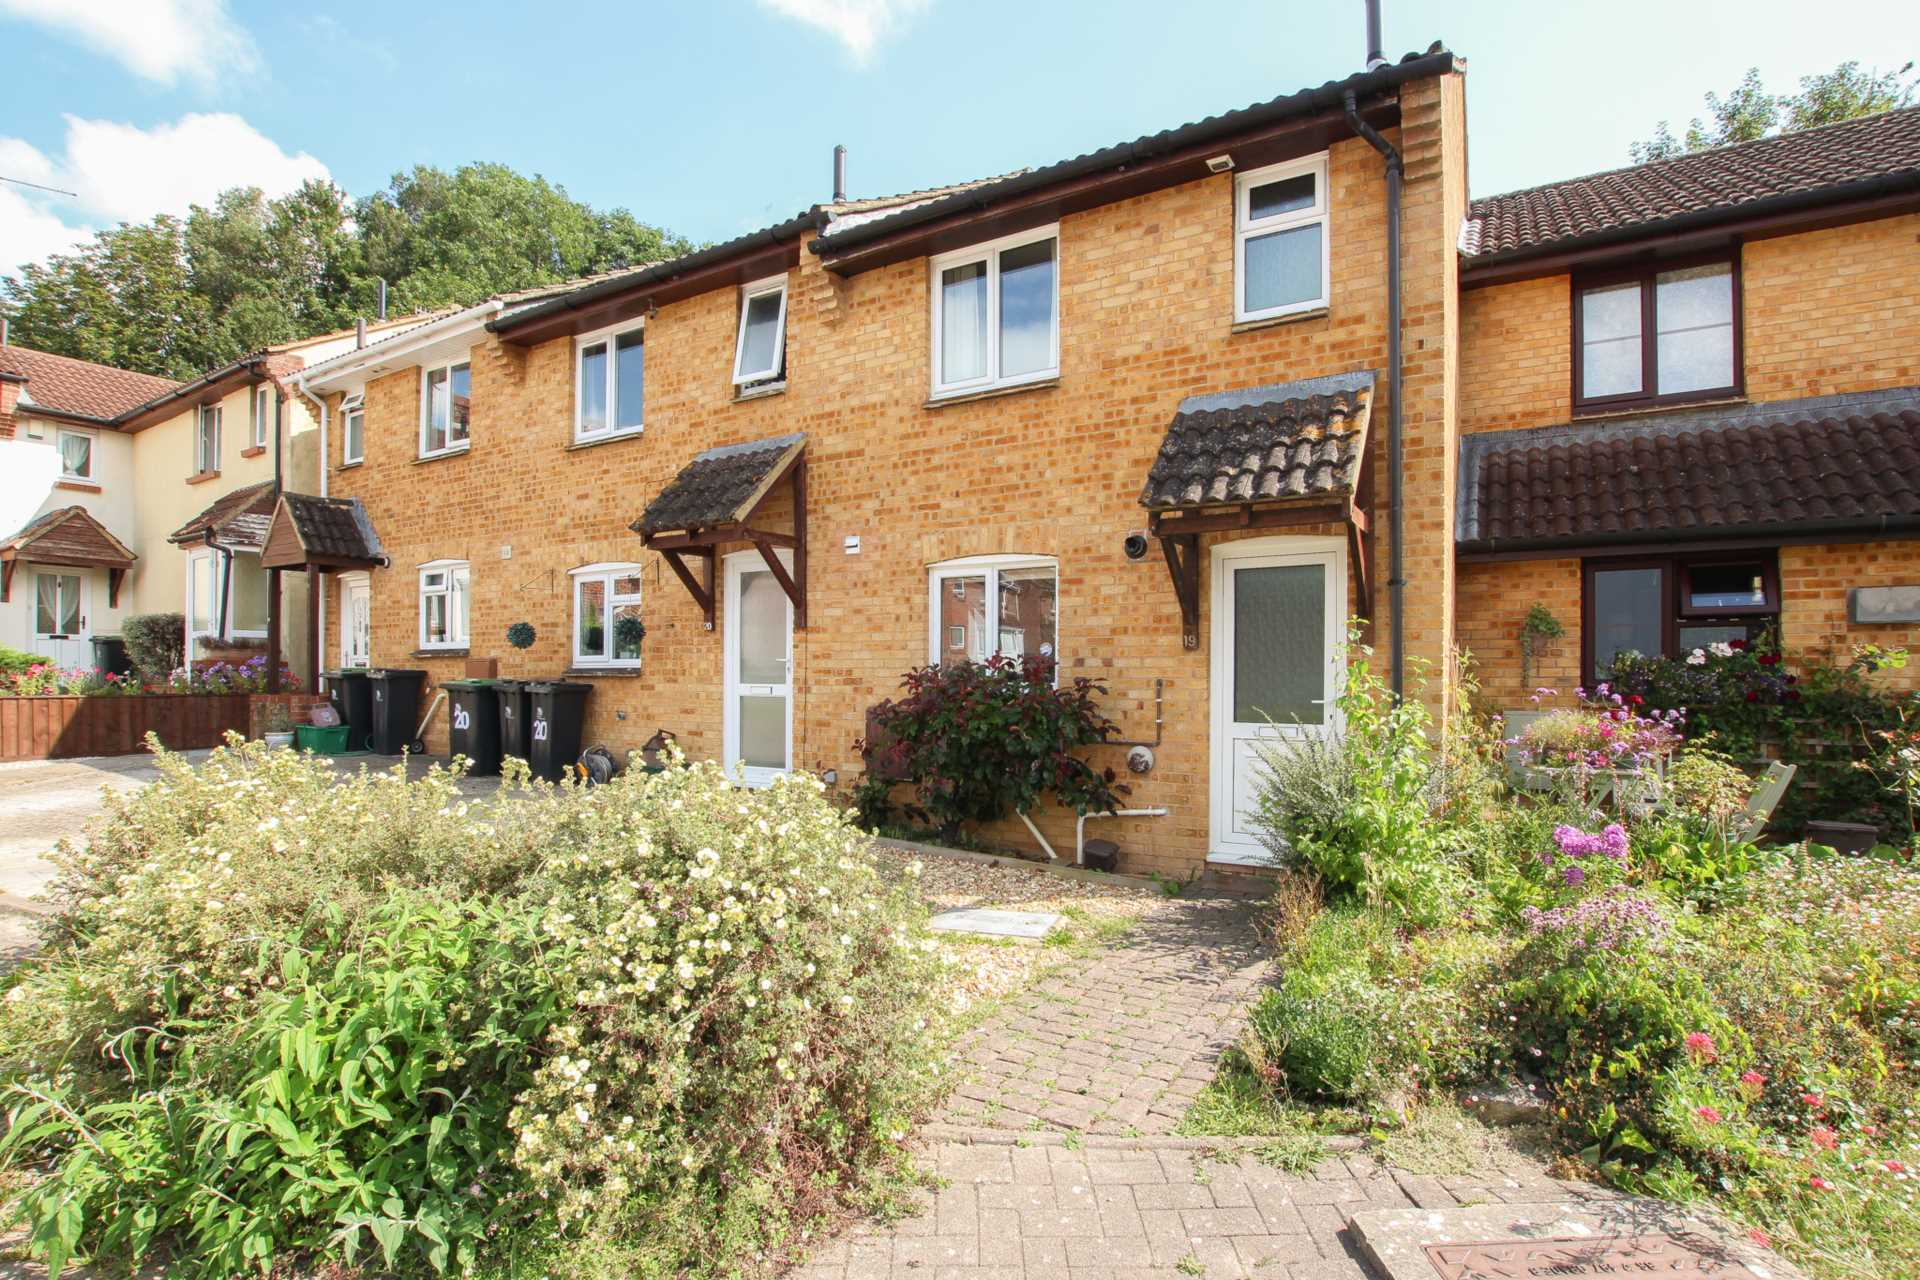 2 bed terraced house for sale in Eastleaze Road, Blandford Forum 0